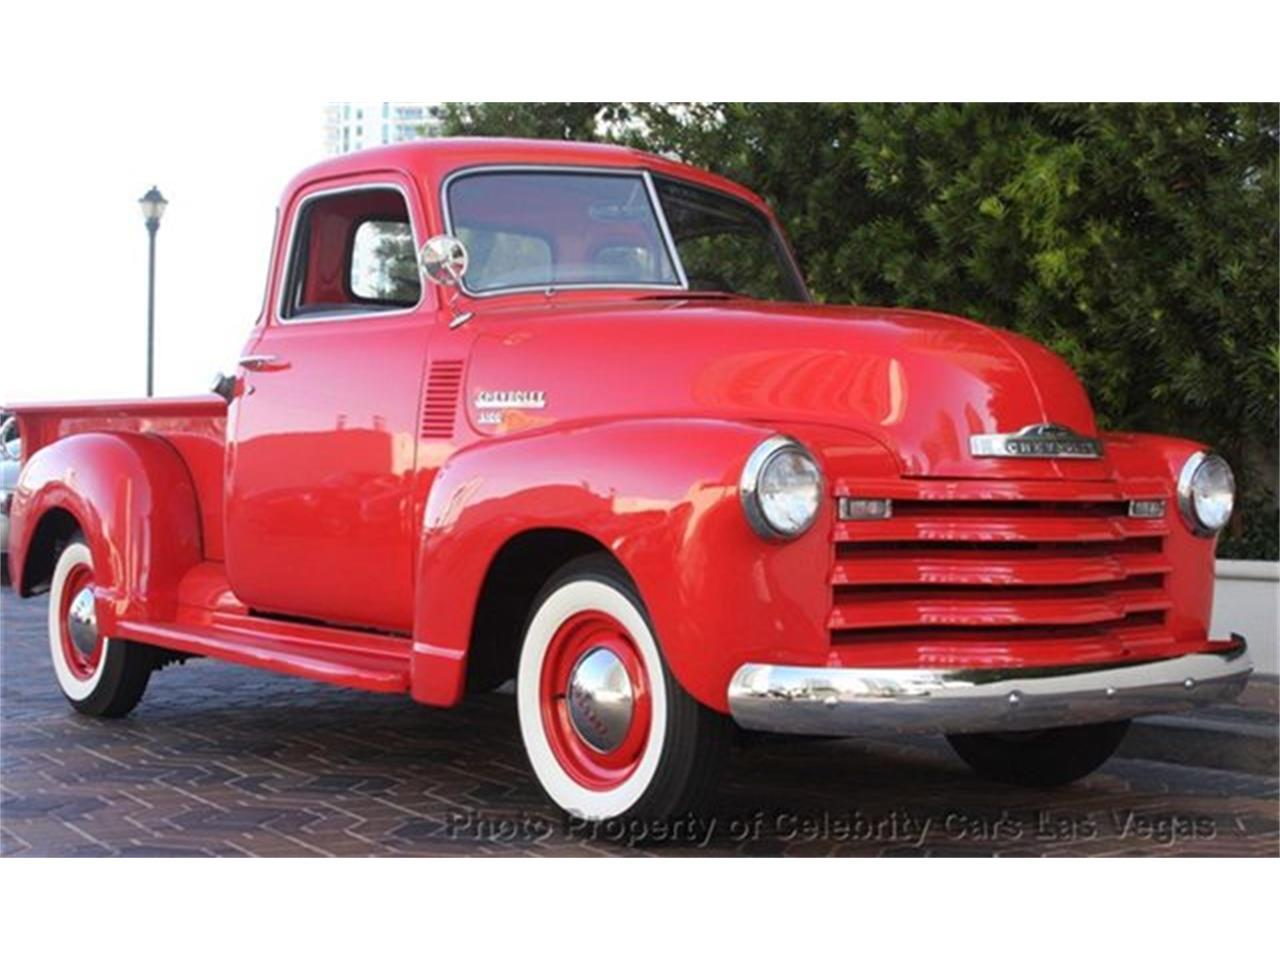 Large Picture of 1950 Chevrolet 3100 located in Las Vegas Nevada - $27,100.00 Offered by Celebrity Cars Las Vegas - CZHB